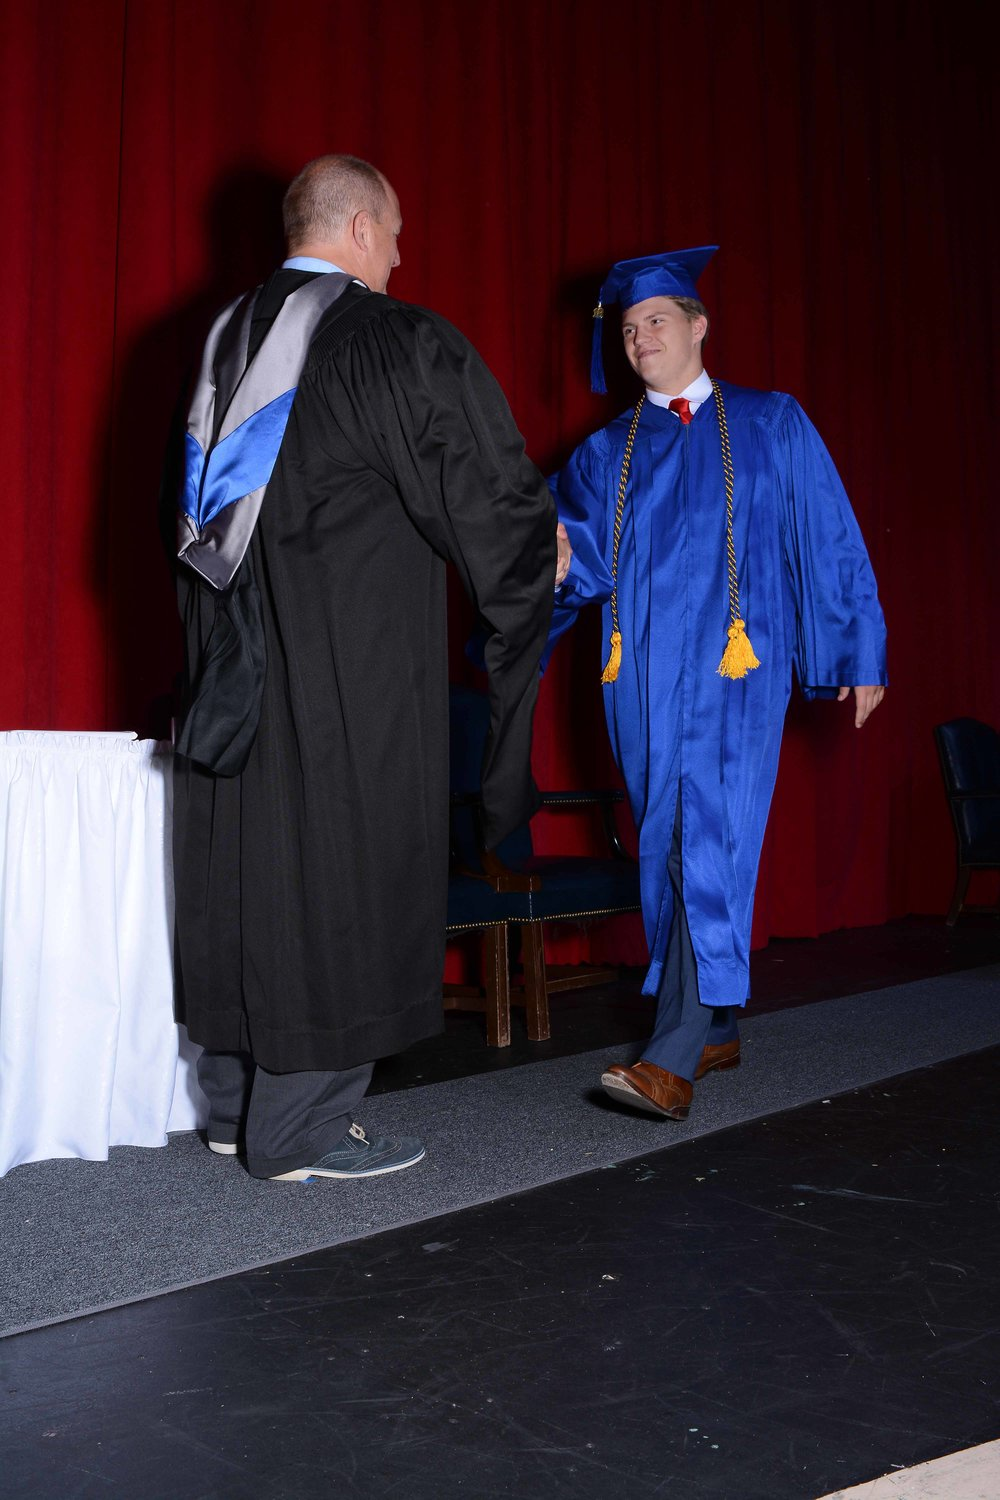 May14 Commencement180.jpg